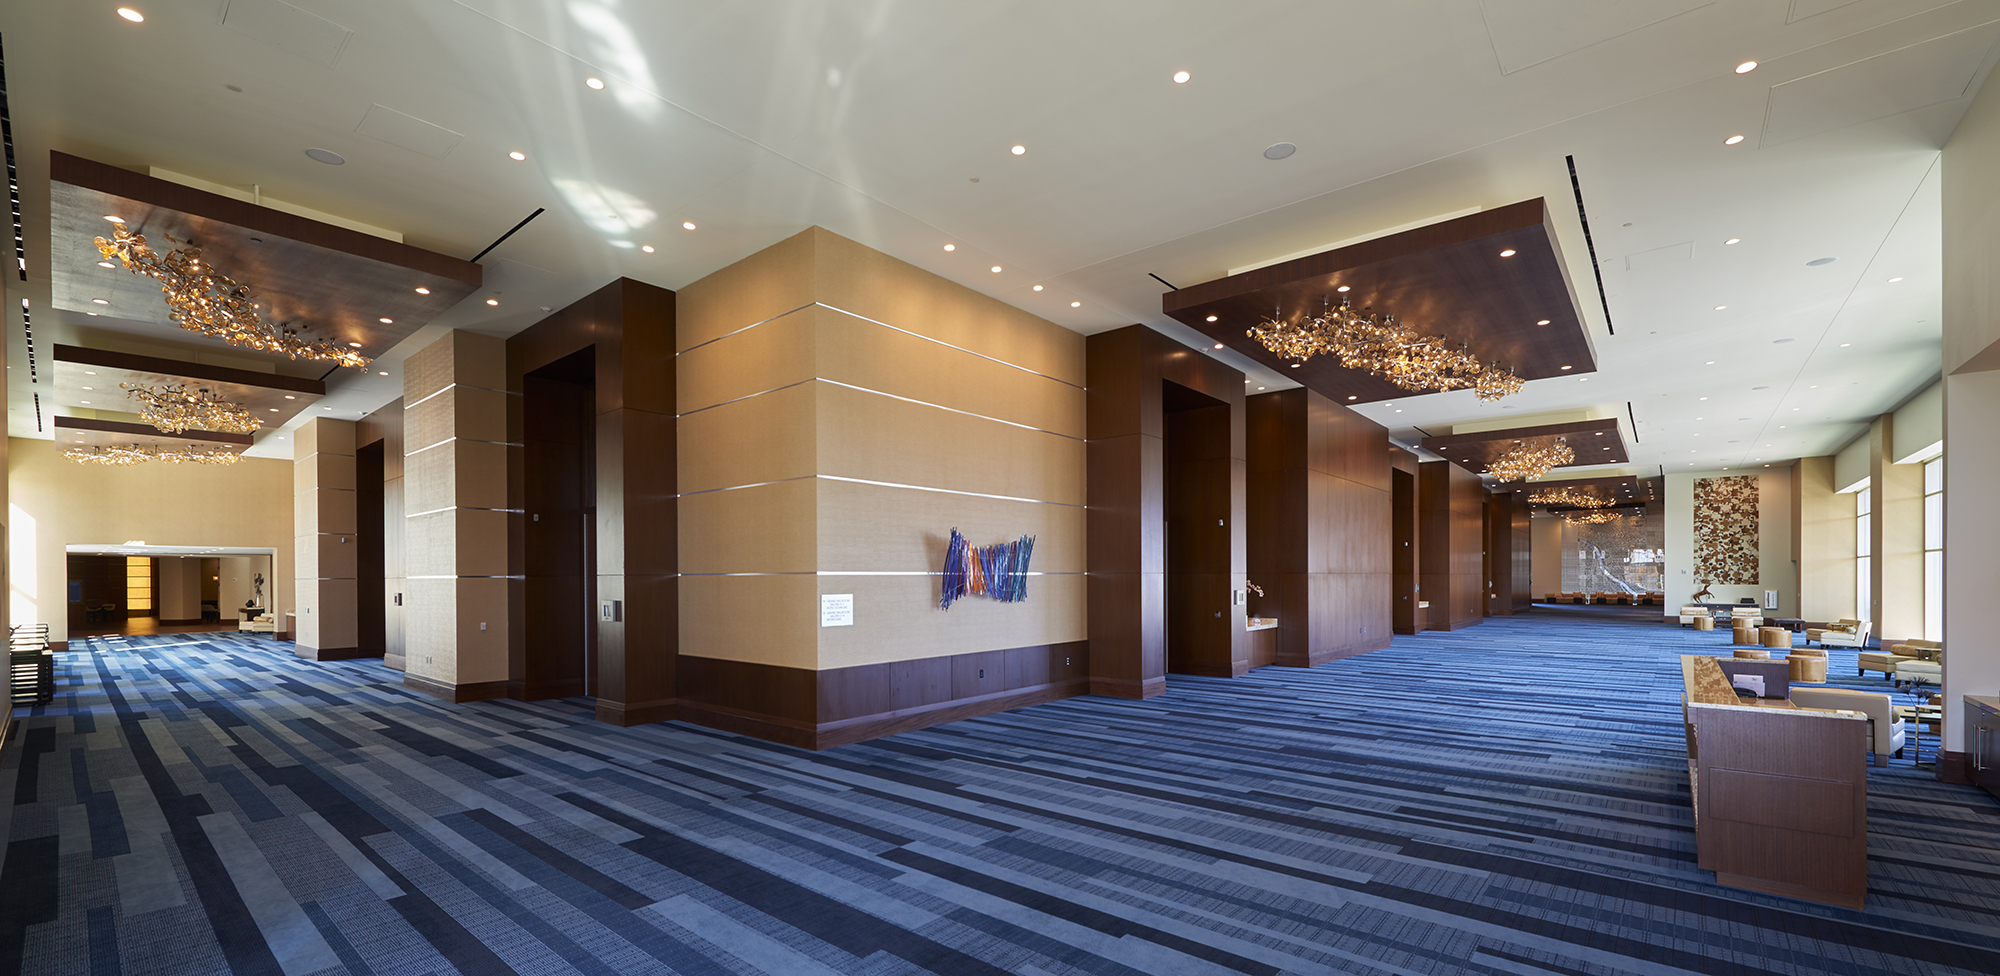 renaissance dallas hotel ballroom addition the beck group